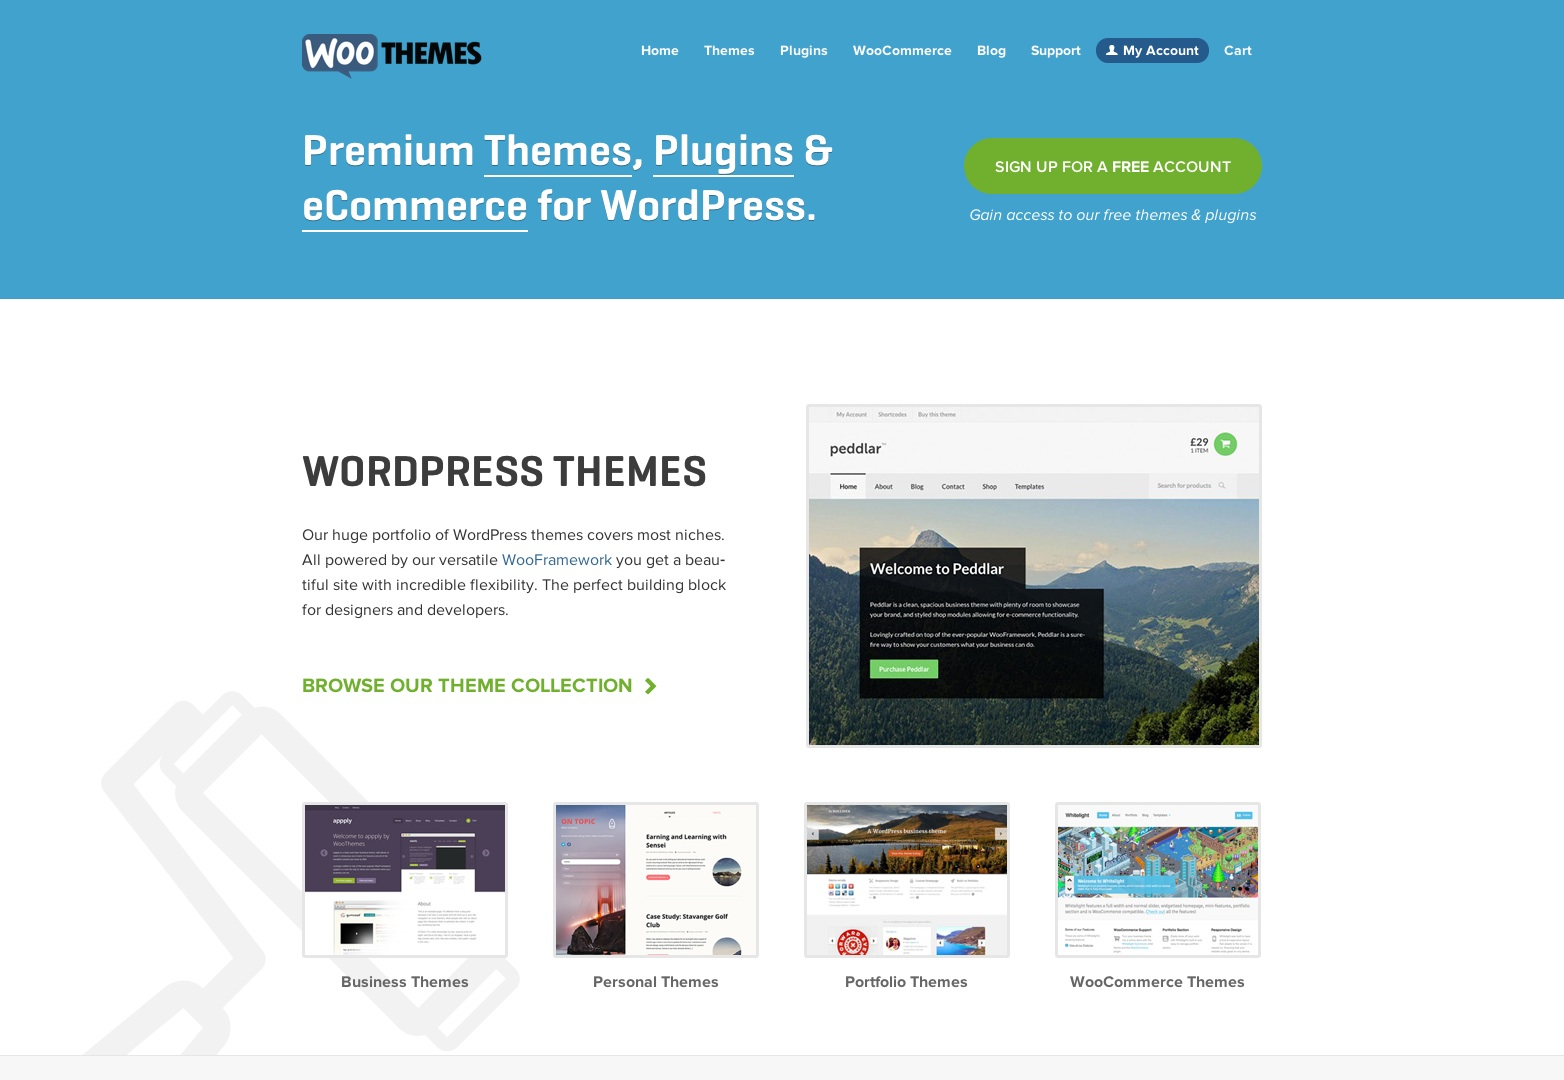 WooThemes | Premium WordPress Themes & Plugins